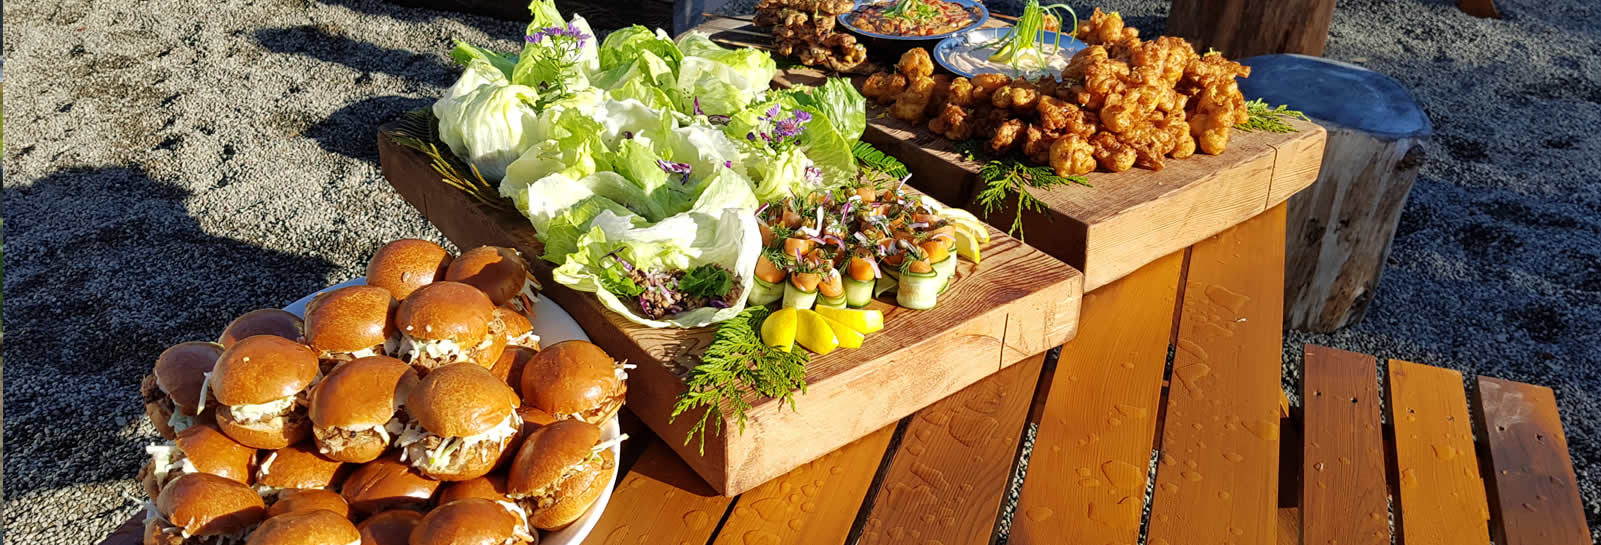 Catering Sliders & Salads